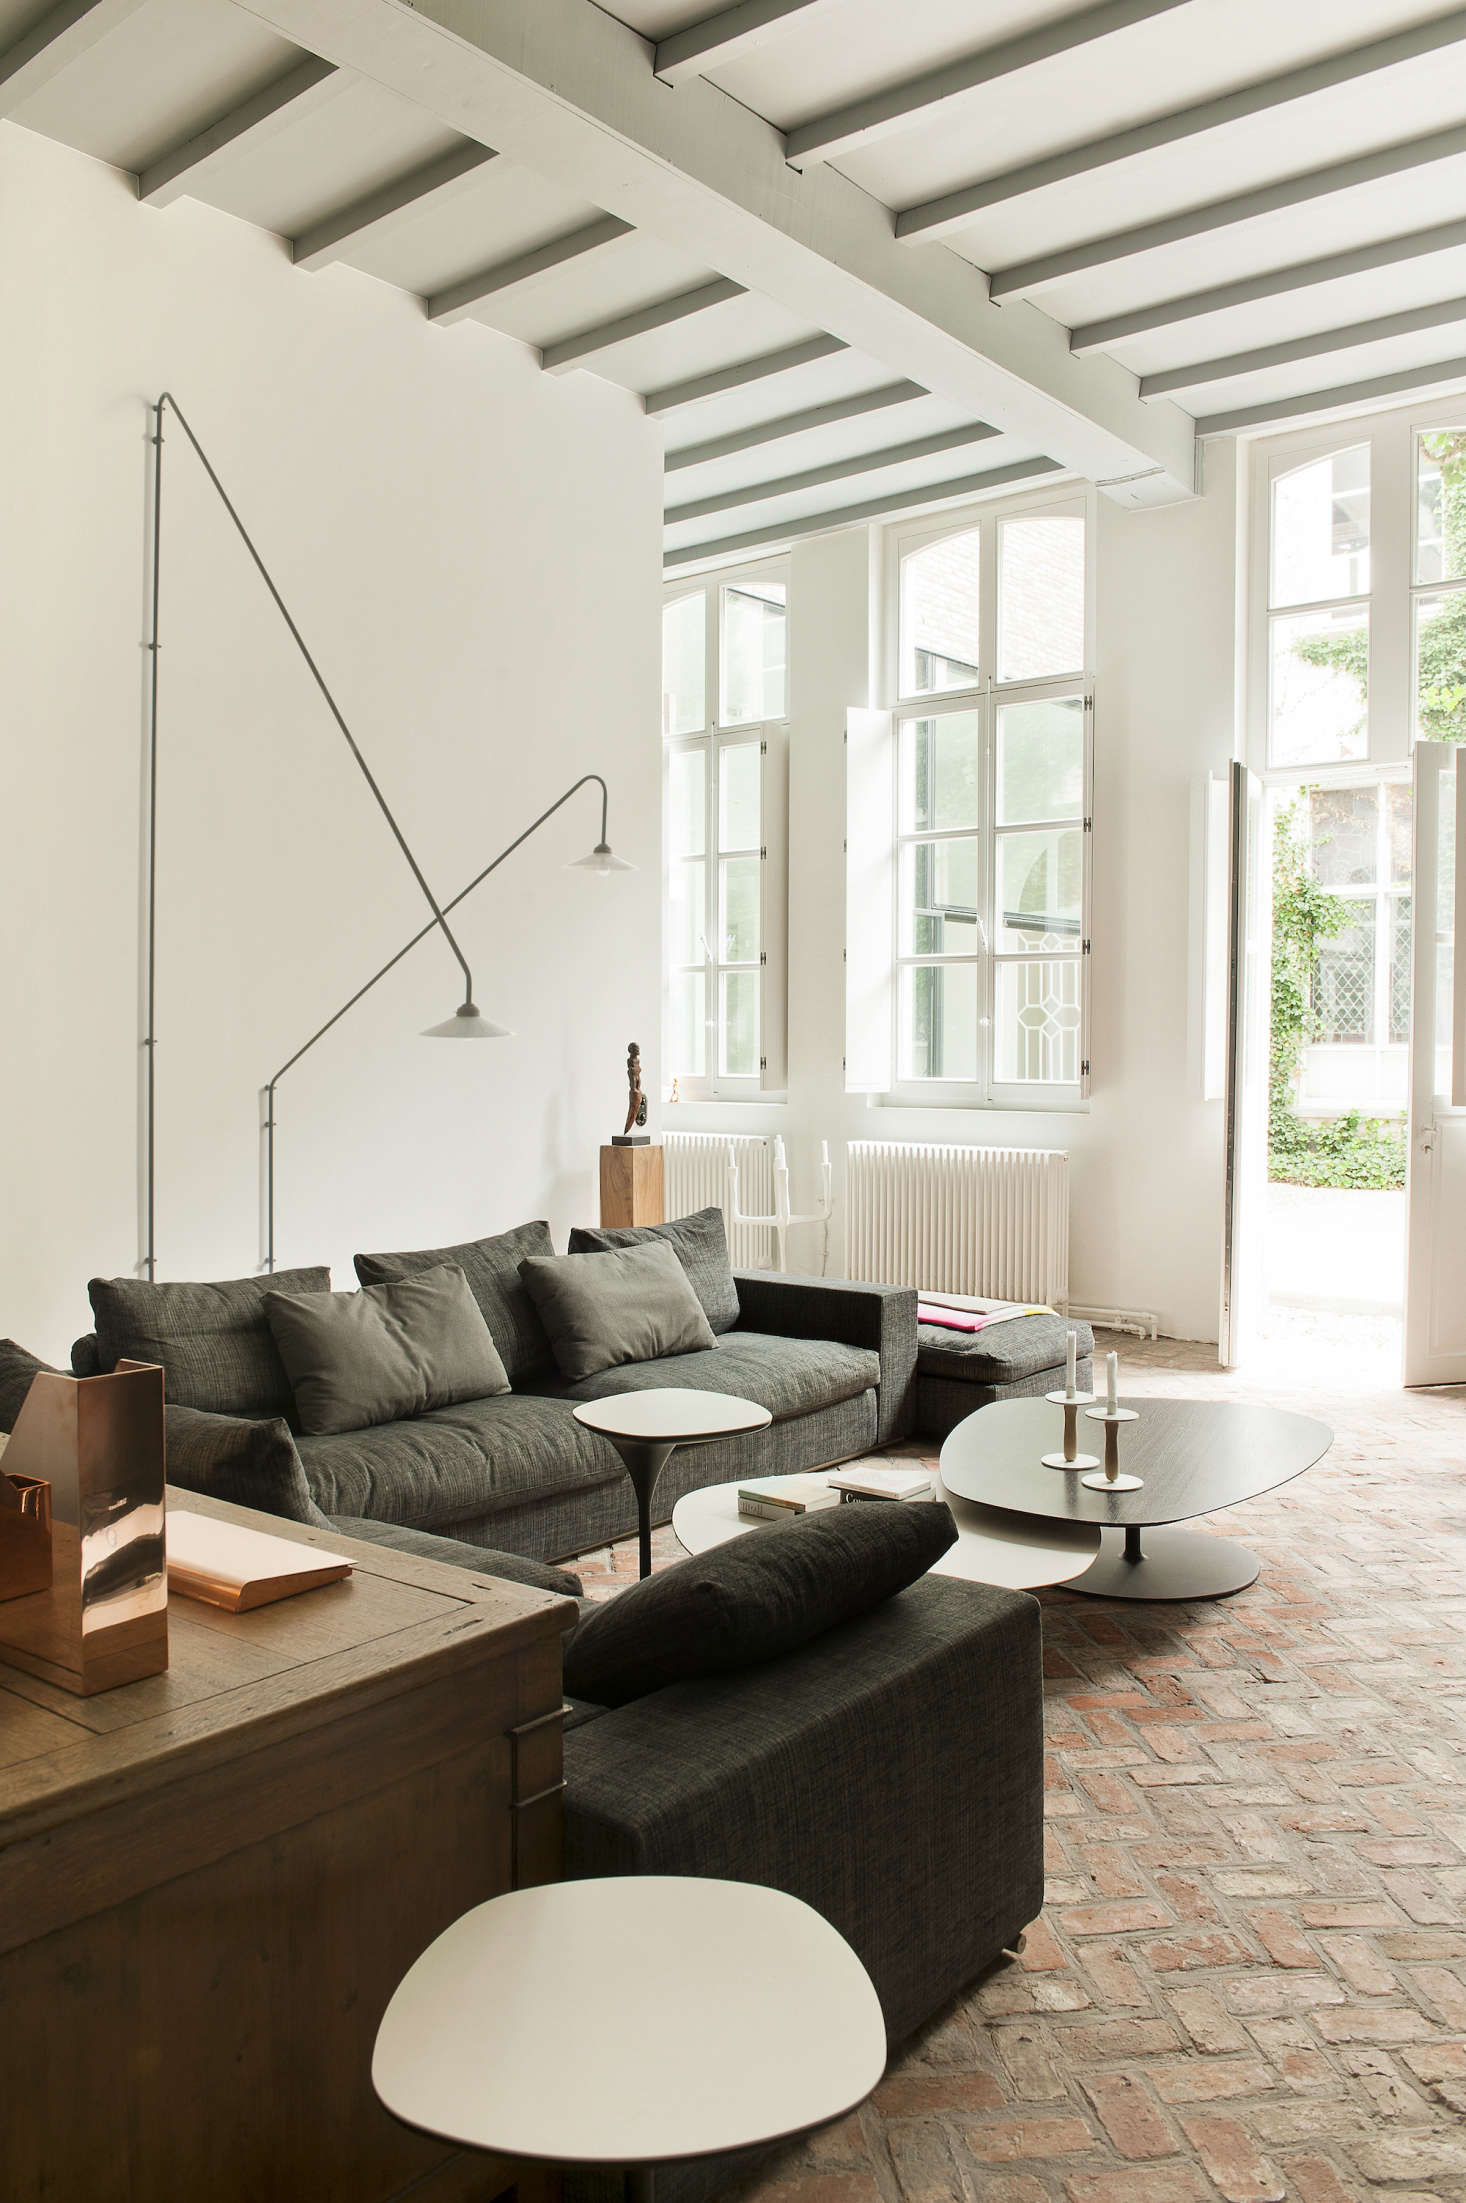 A Flexform Sofa and articulating wall lights by Muller Van Severen.